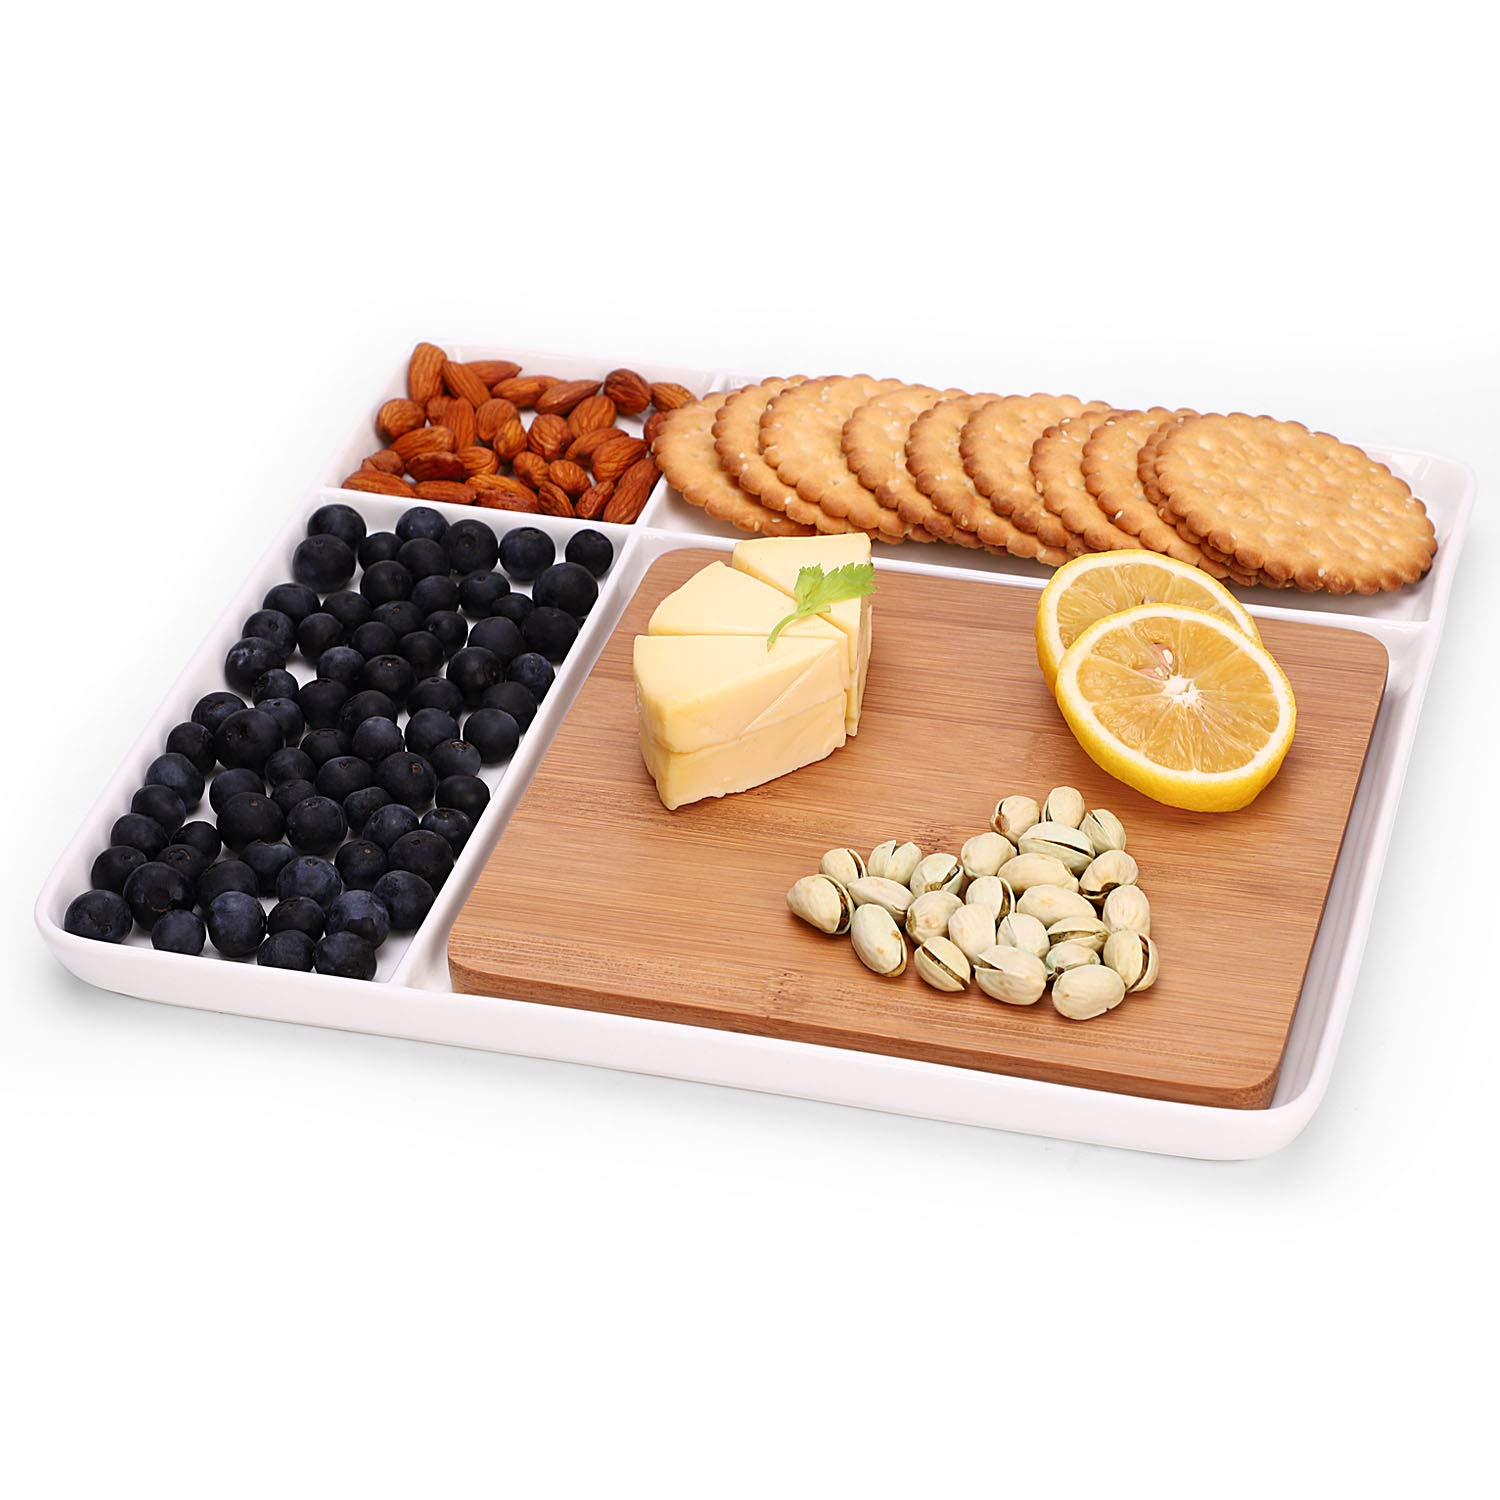 Ceramic Divided Plate with Bamboo Cutting Board - Cheese Board Salad Plate Dinner Plate Cake Plate - Gift Idea - Great Use as Any Occasion (White) by One Goods-1 (Image #1)